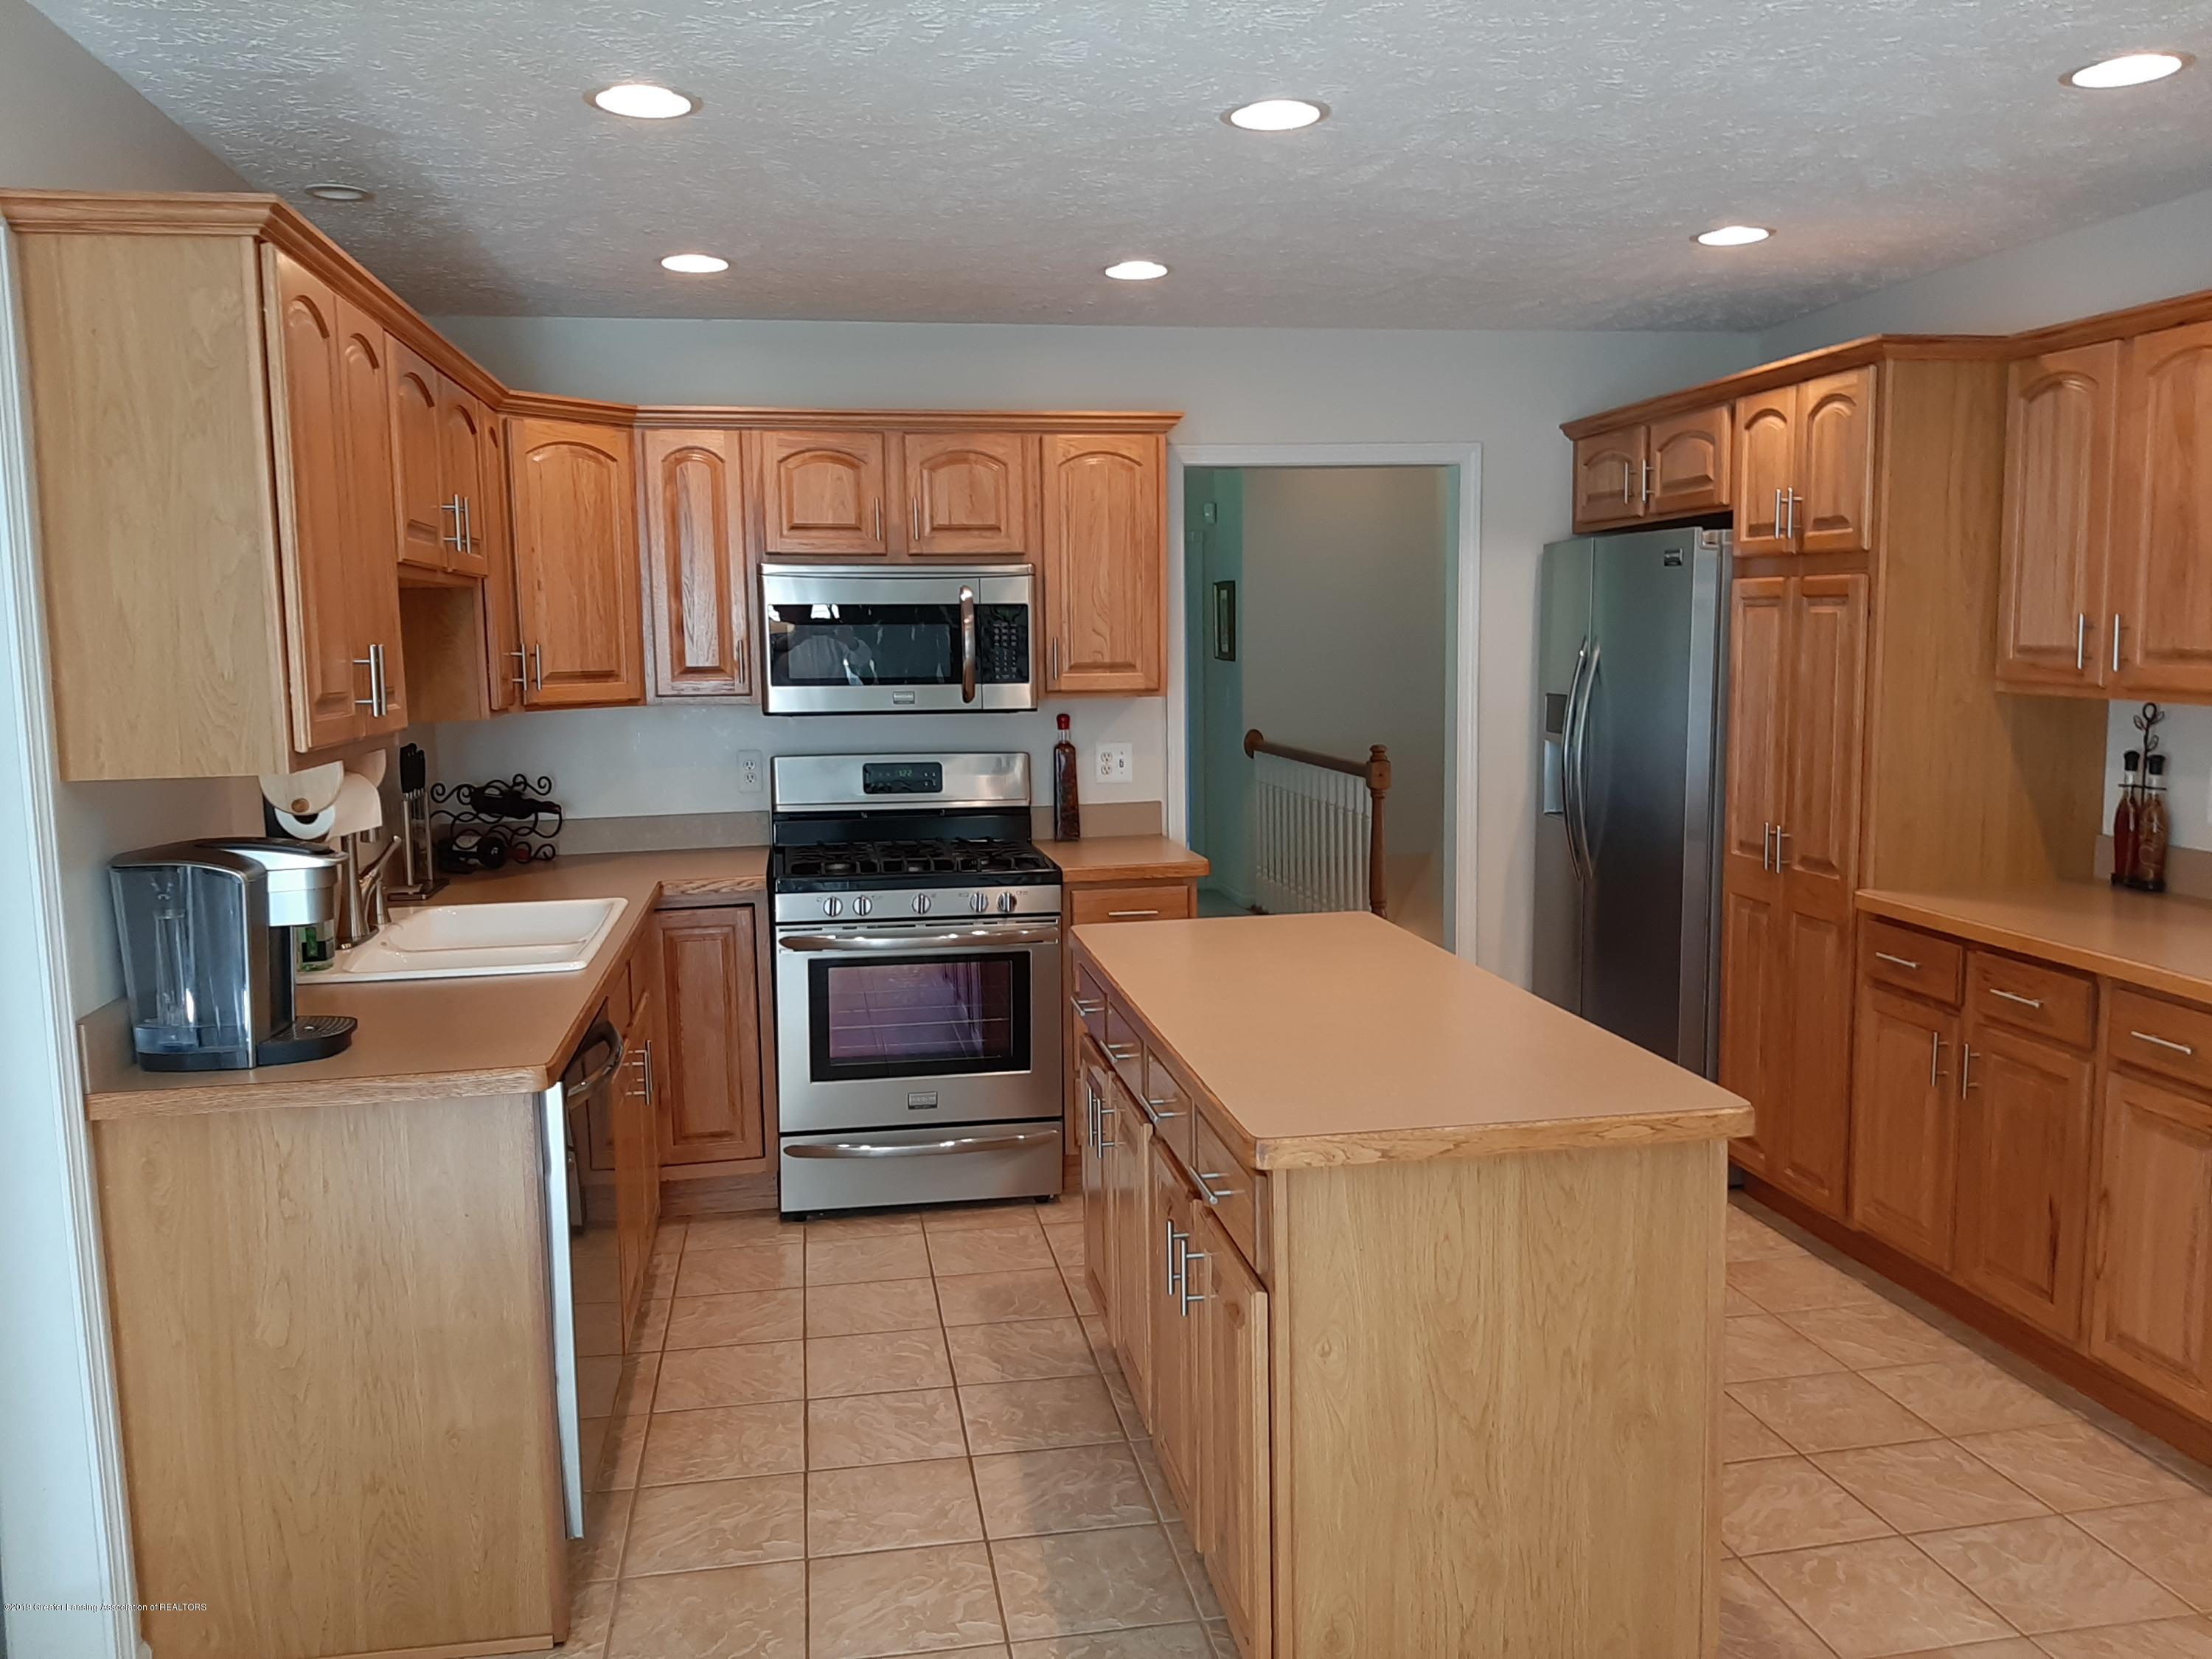 5850 Cartago Dr - Kitchen 2 - 2